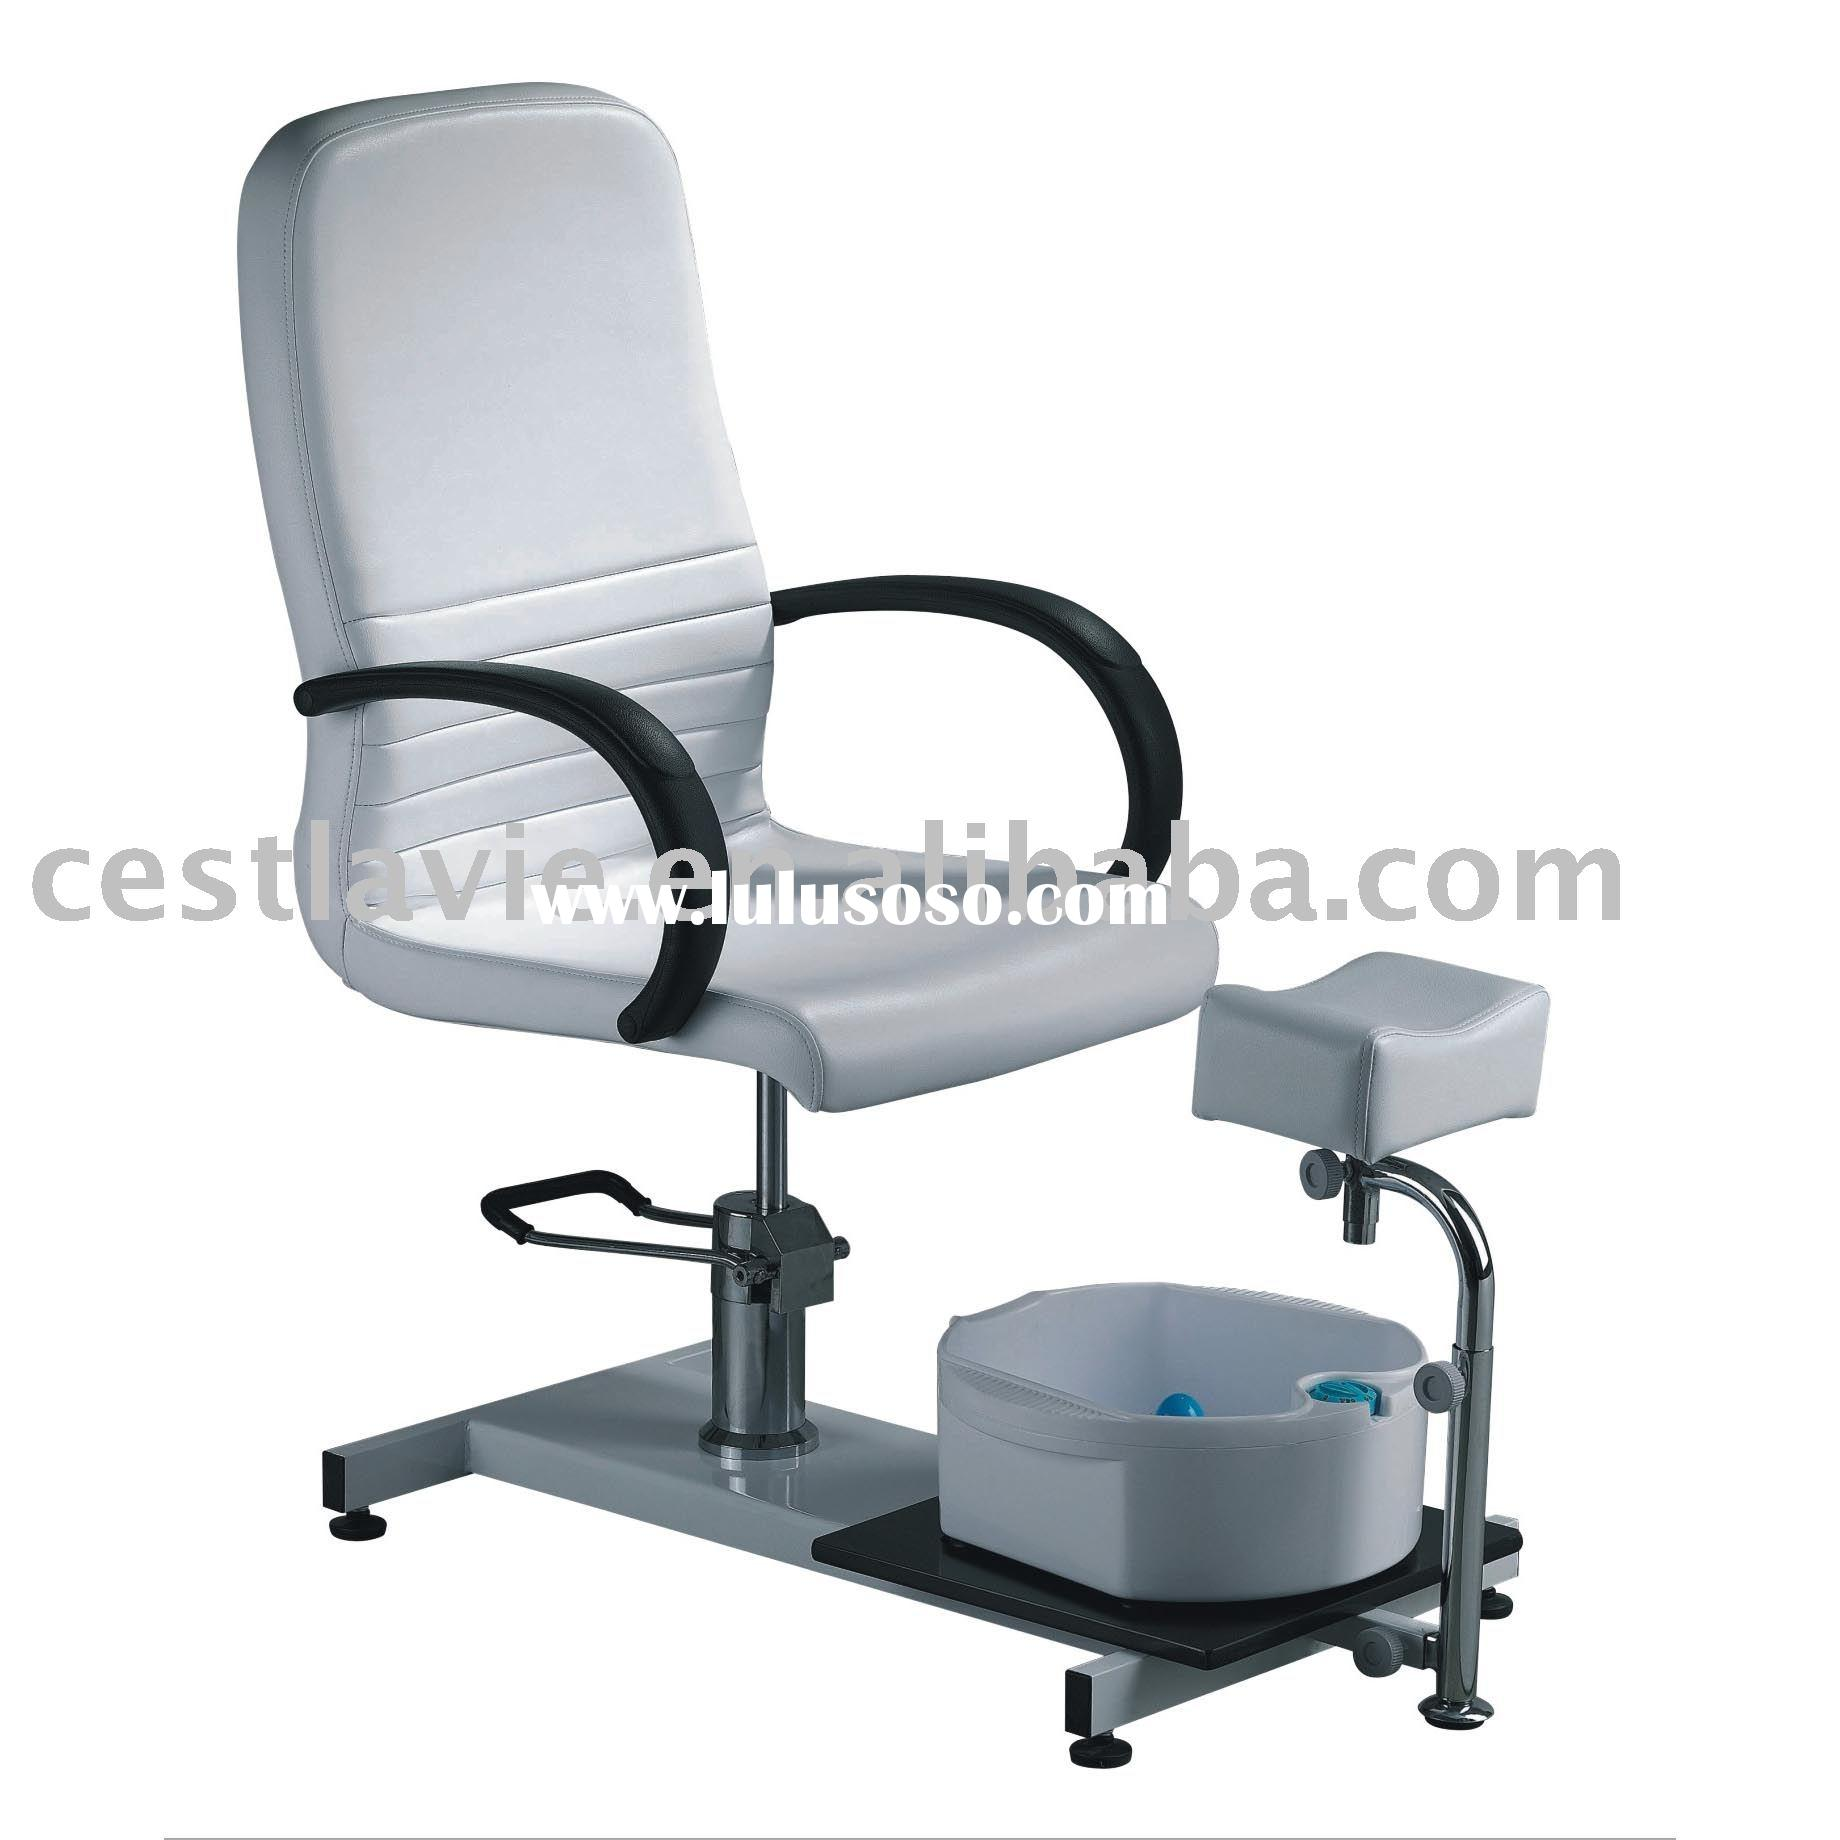 Pedicure chair 8008203 massage chair spa chair salon equipment beauty equipment